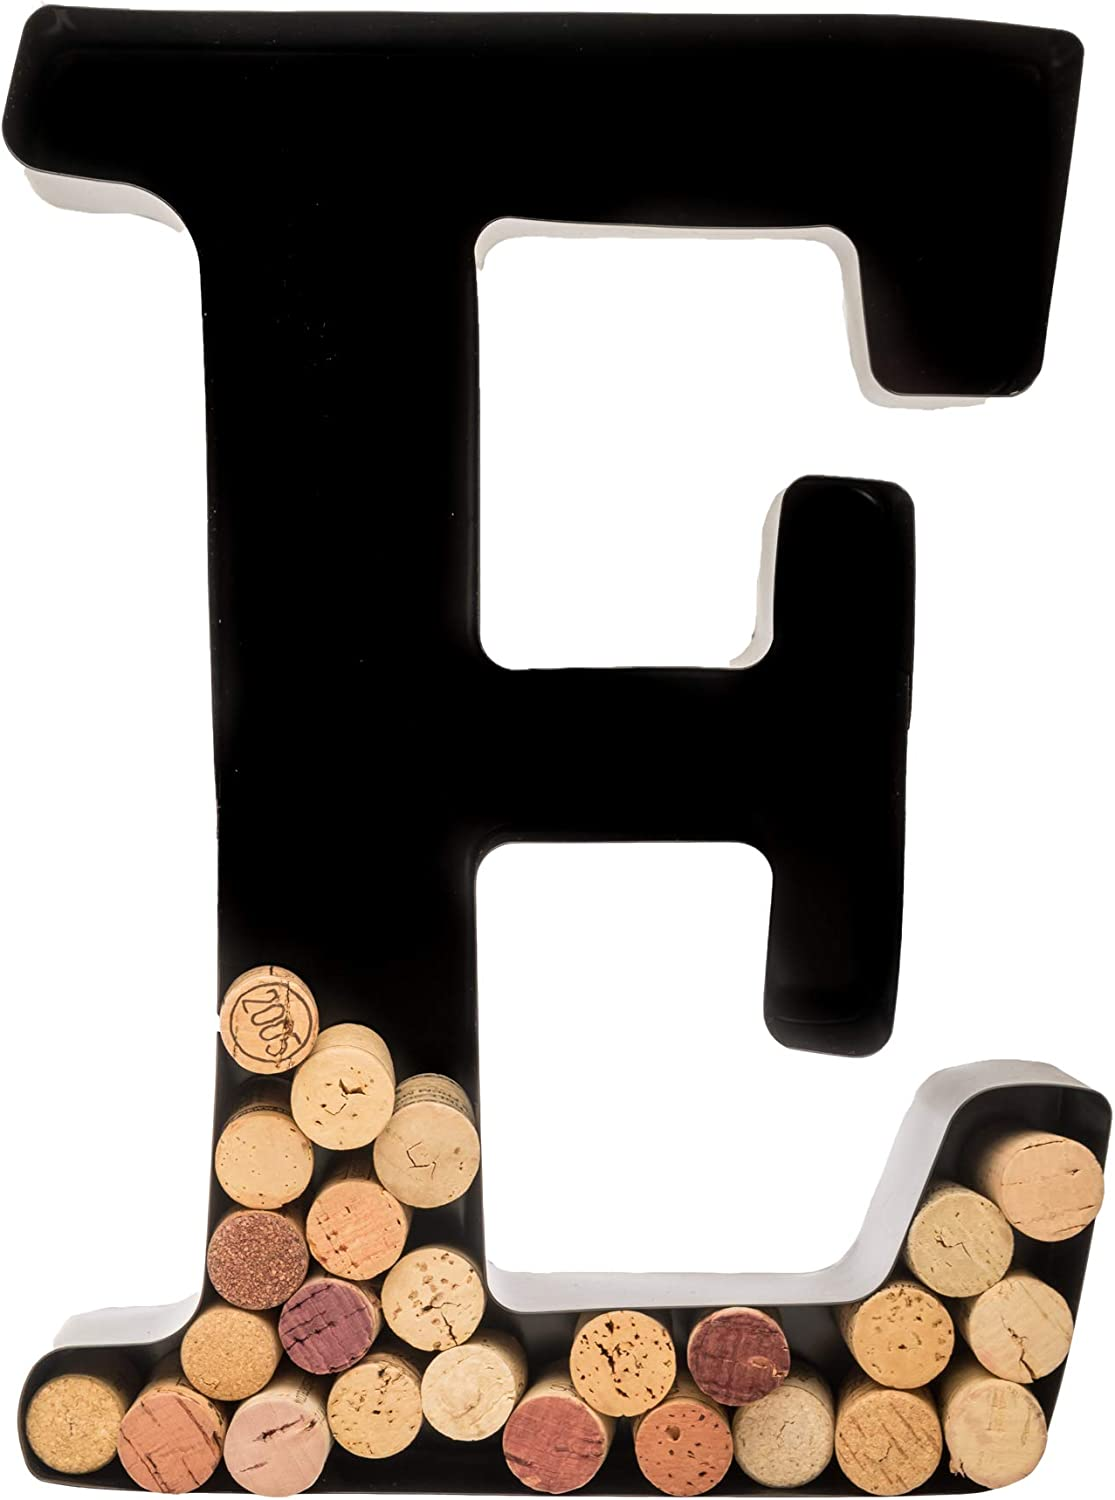 Wine Cork Holder - Metal Monogram Letter E, Black, Large | Wine Lover Gifts, Housewarming, Engagement & Bridal Shower Gifts | Personalized Wall Art | Home Décor